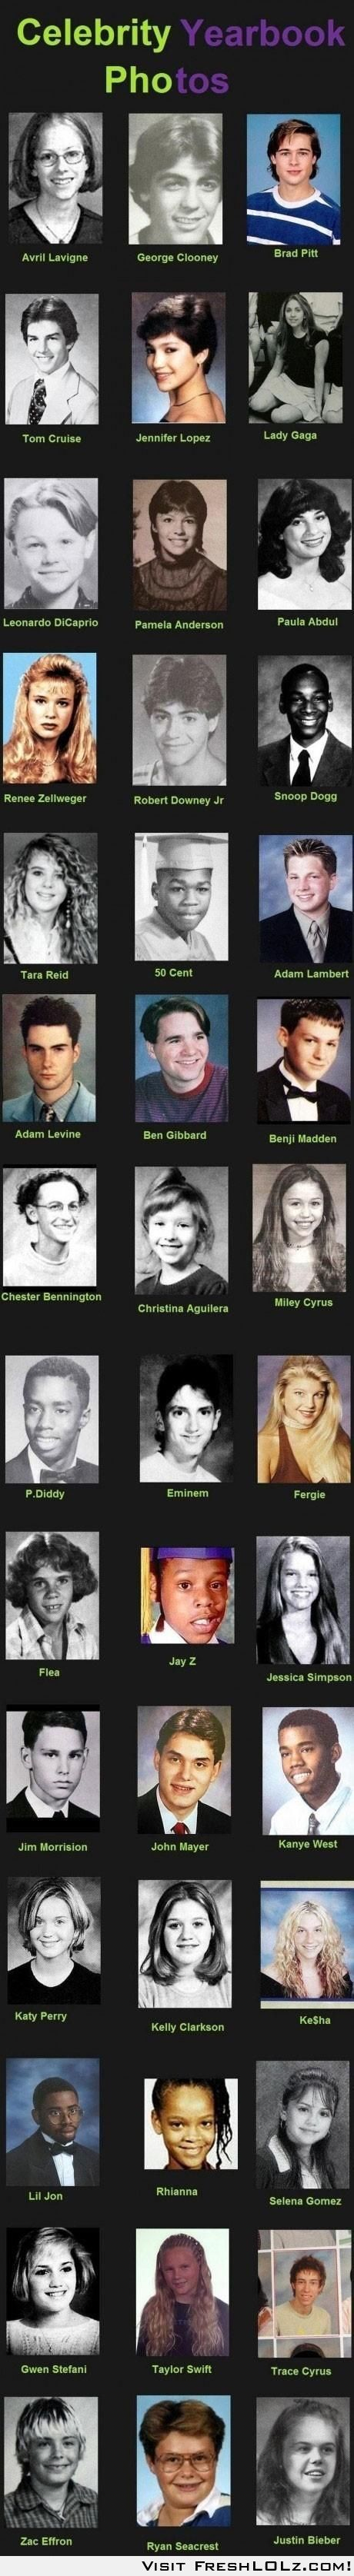 celebrity yearbook photos; Adam Levine is always the best! In everything... Even old year book photos! ;)